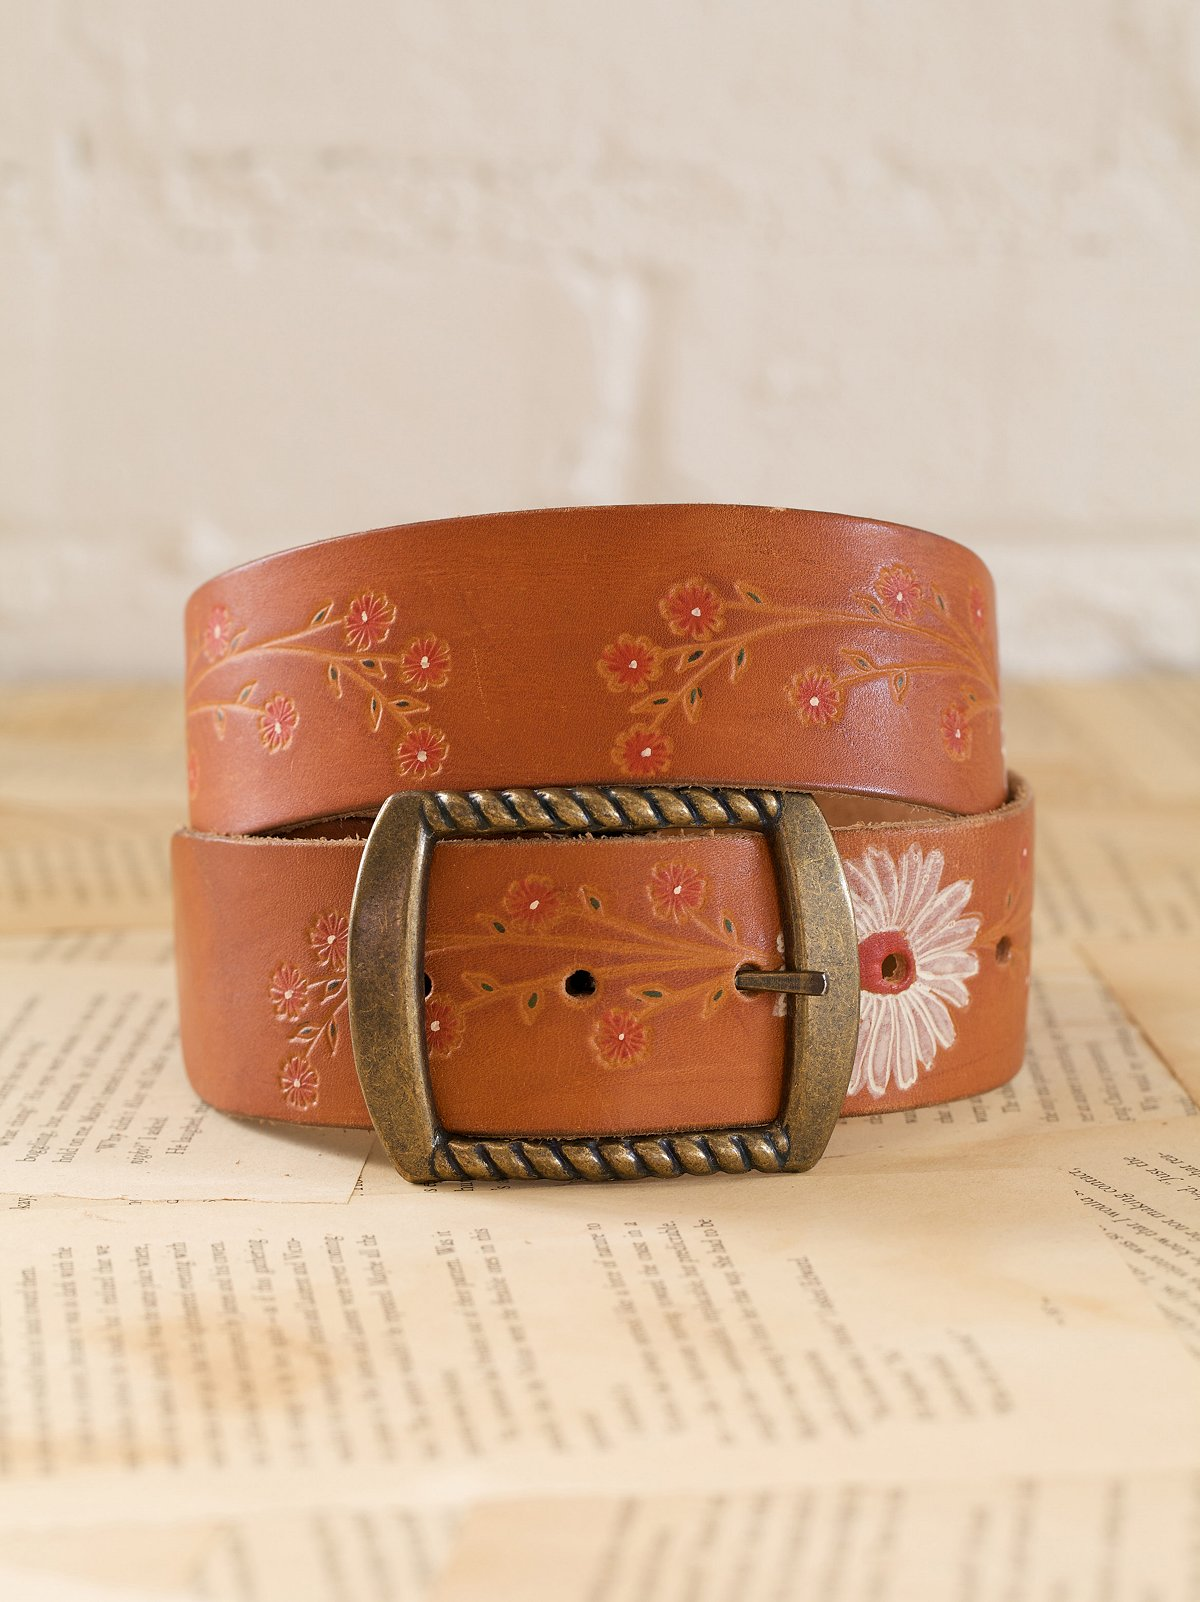 Vintage Leather Belt with Painted Flower Details